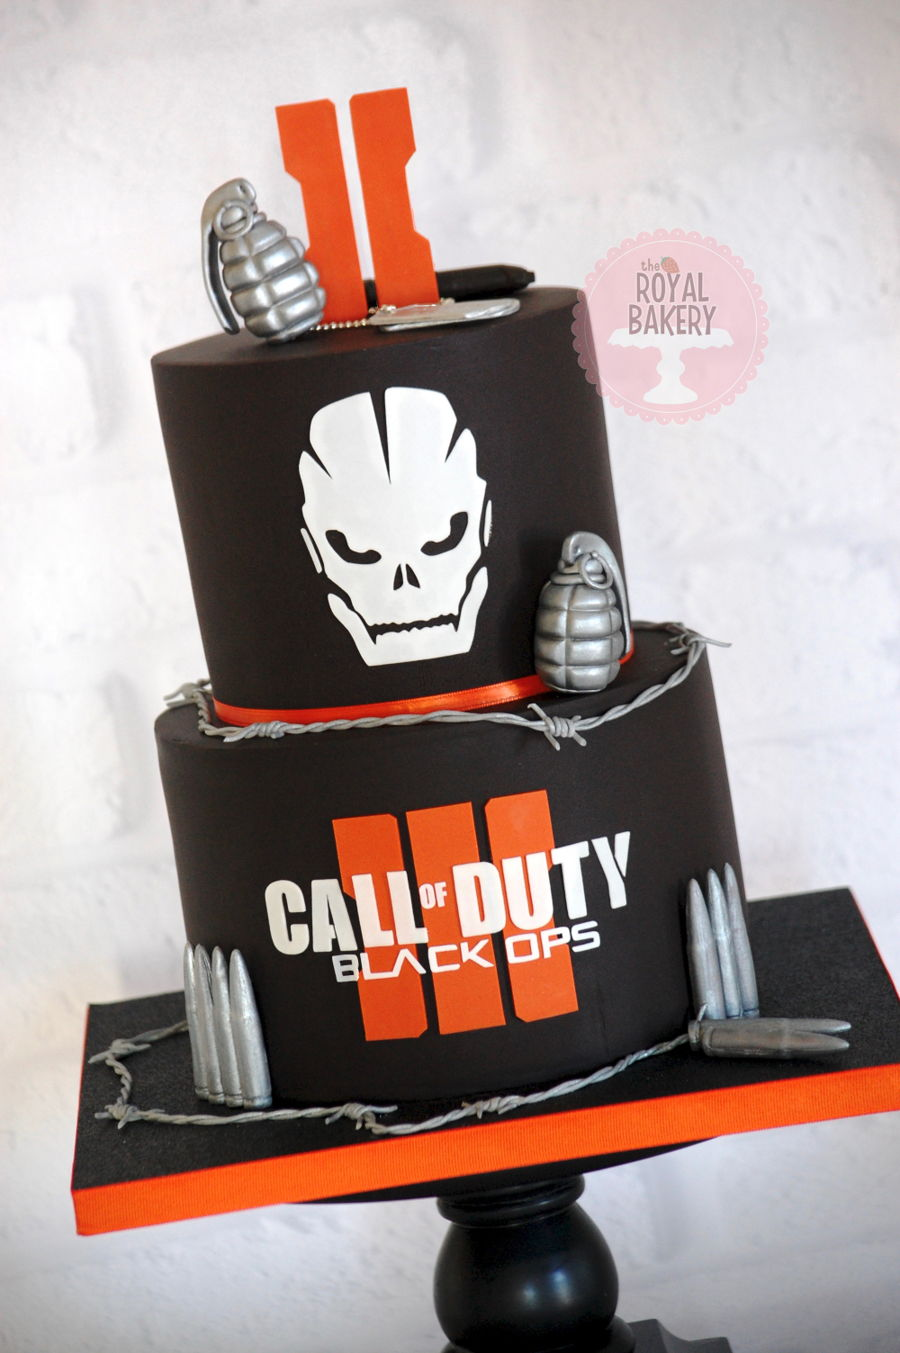 Call Of Duty Black Ops Birthday Cakes